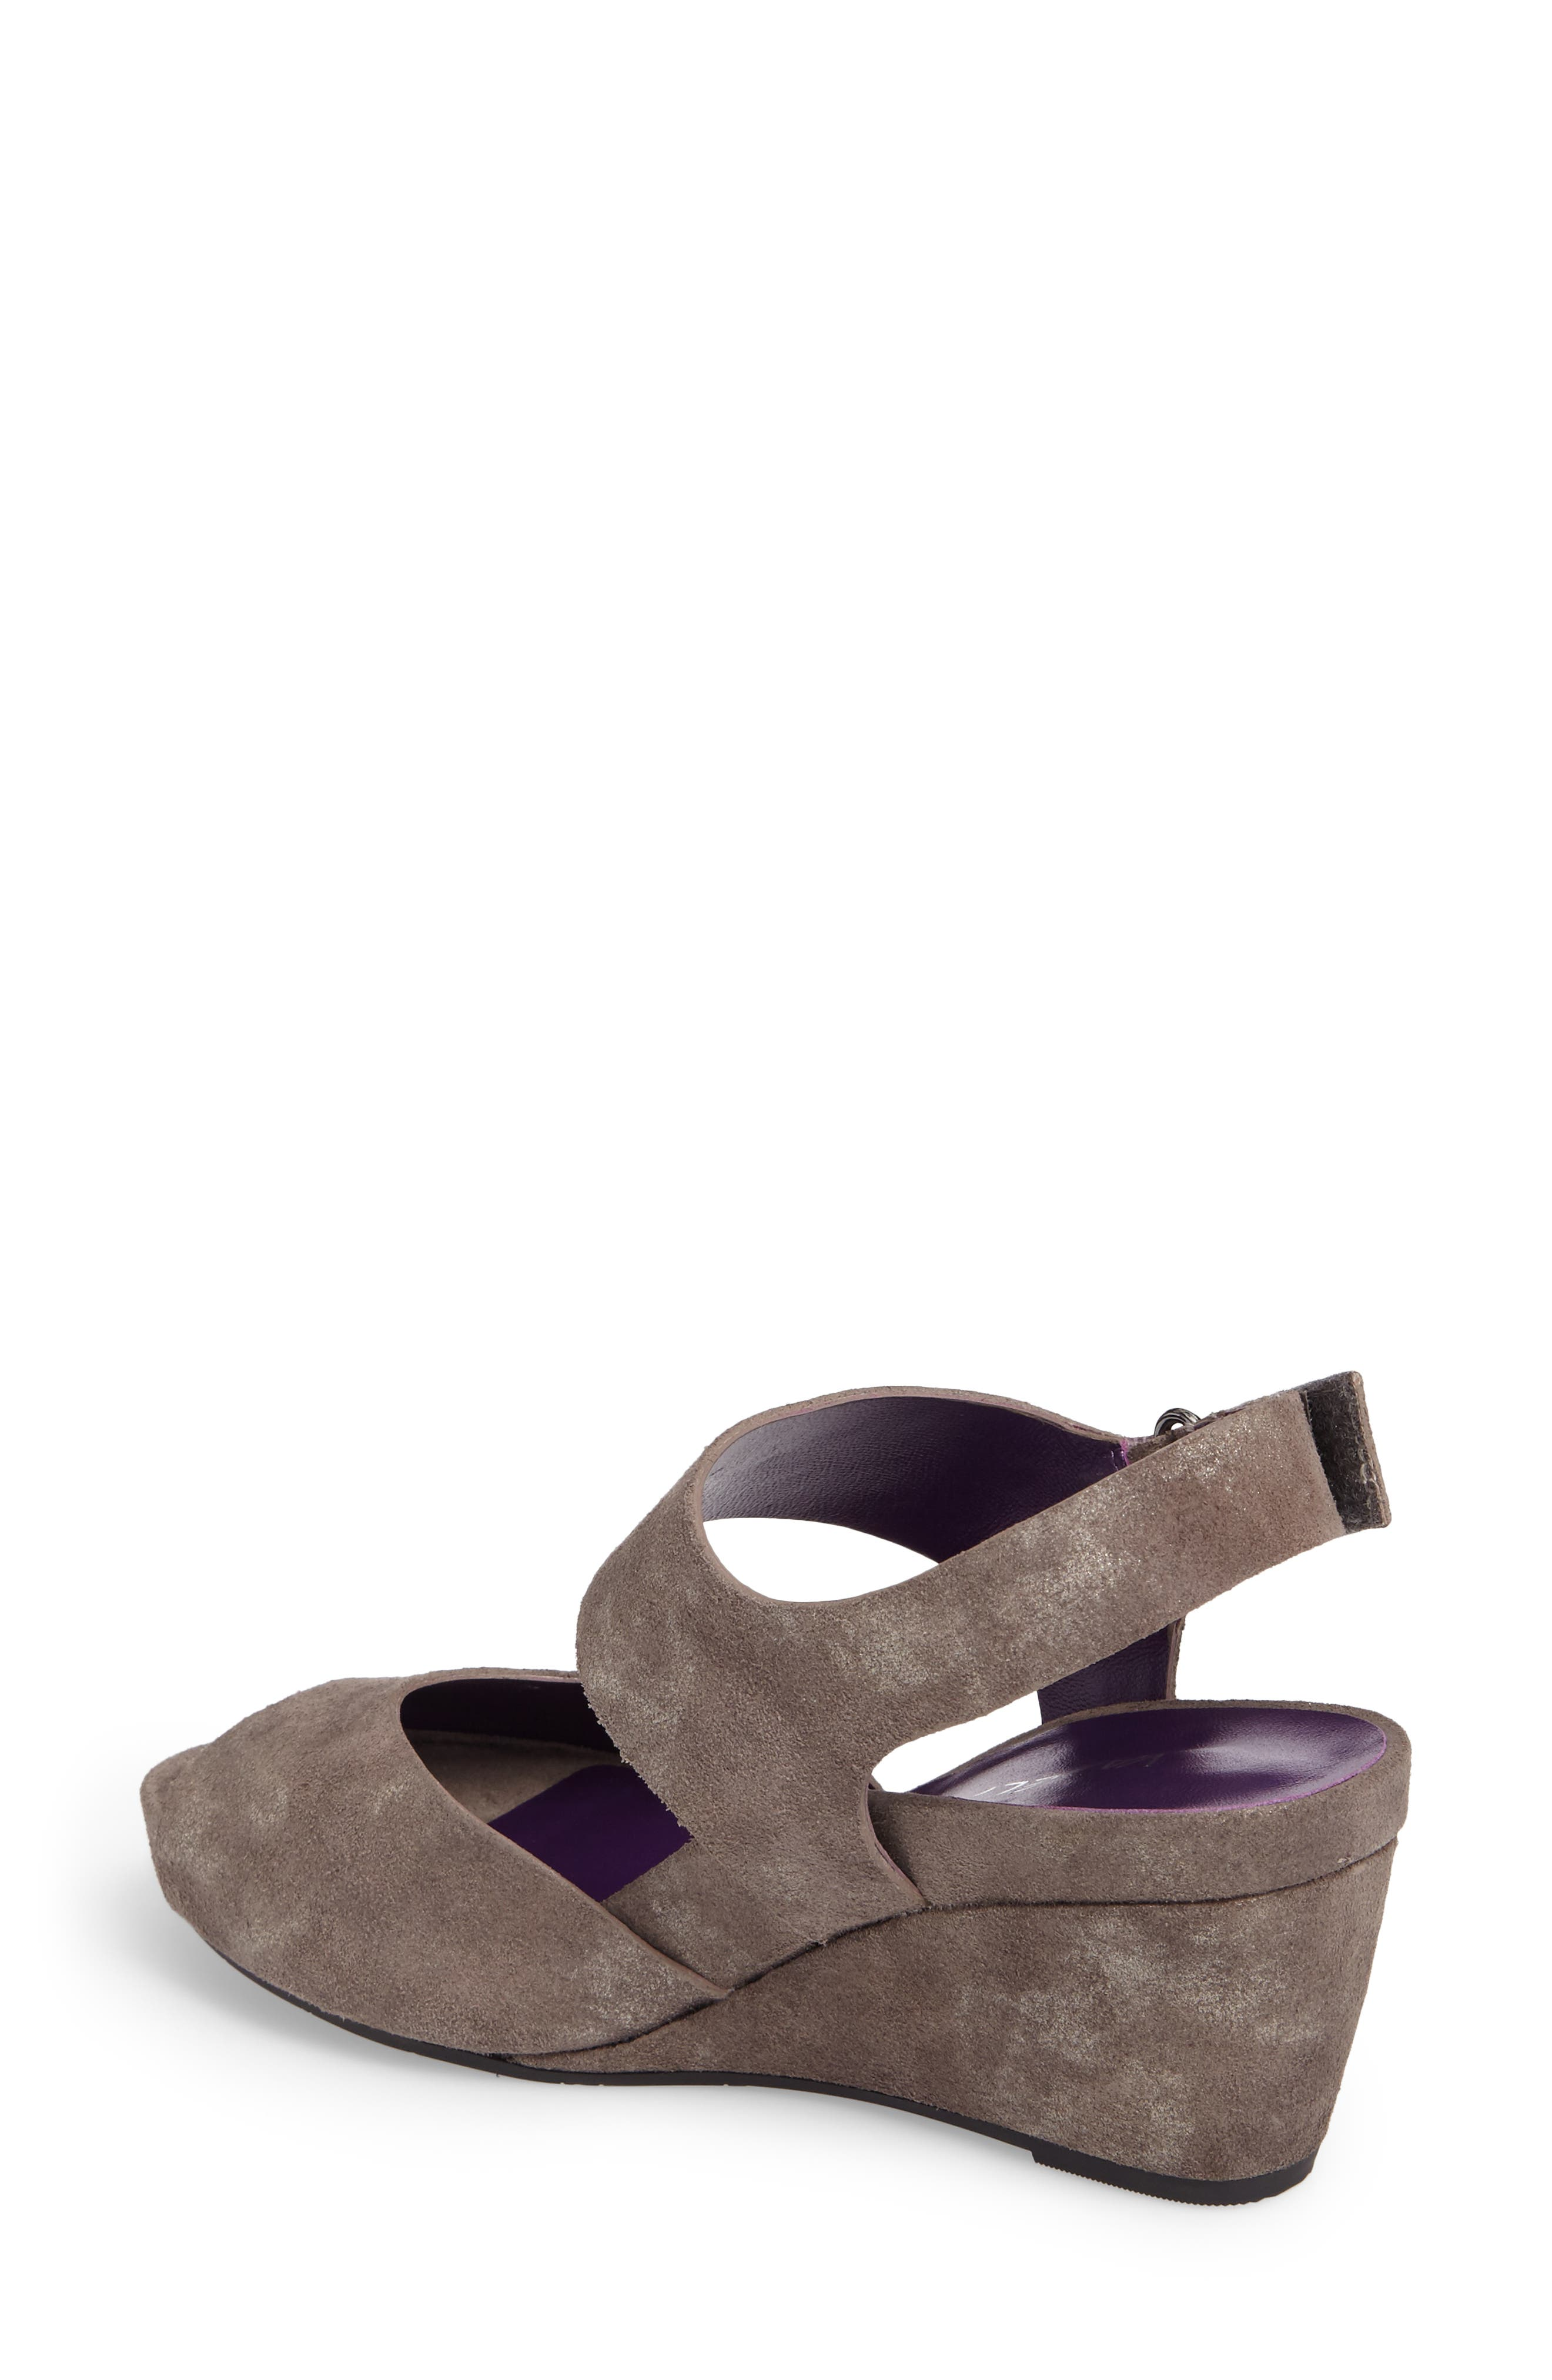 Ilex Wedge Sandal,                             Alternate thumbnail 2, color,                             Taupe Suede